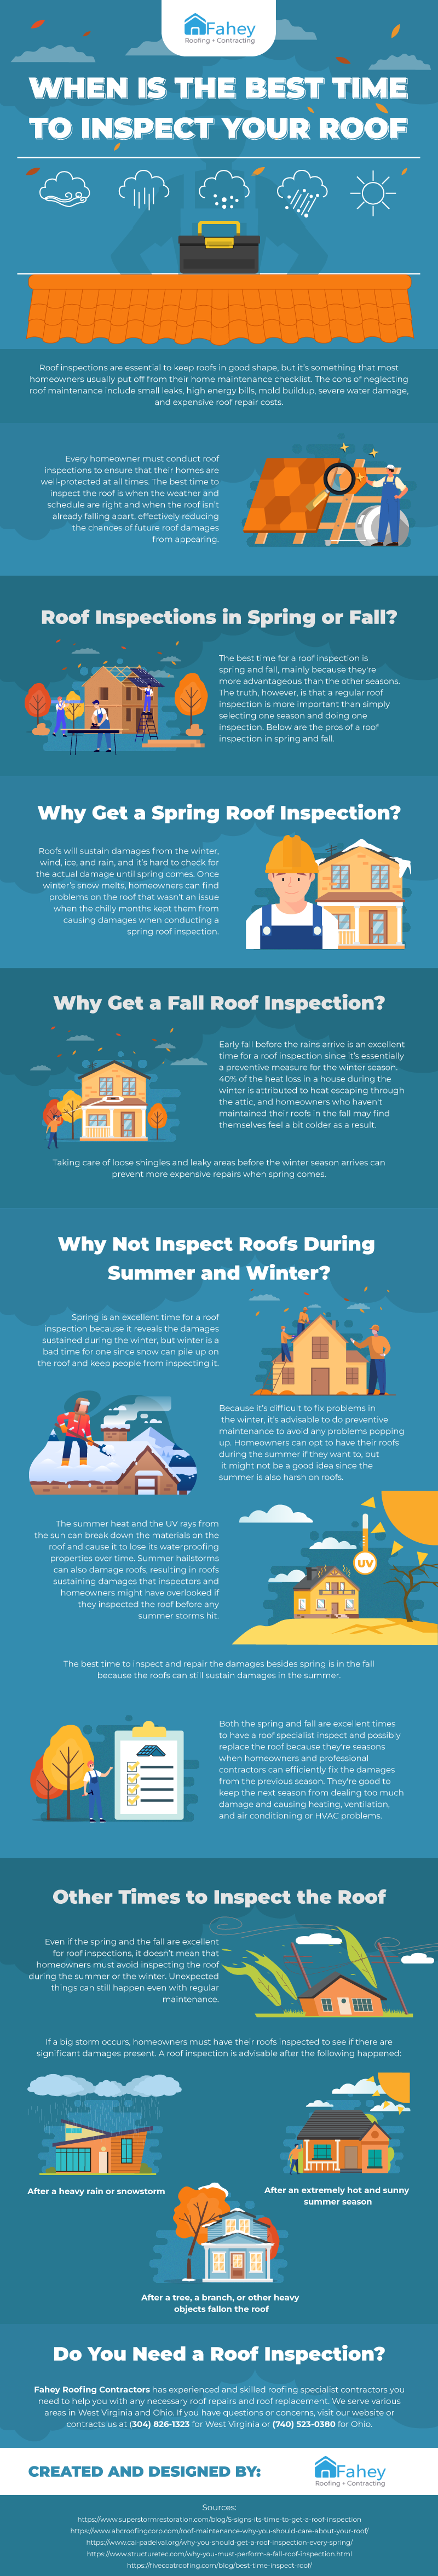 When-is-the-best-time-to-inspect-your-roof-infographic